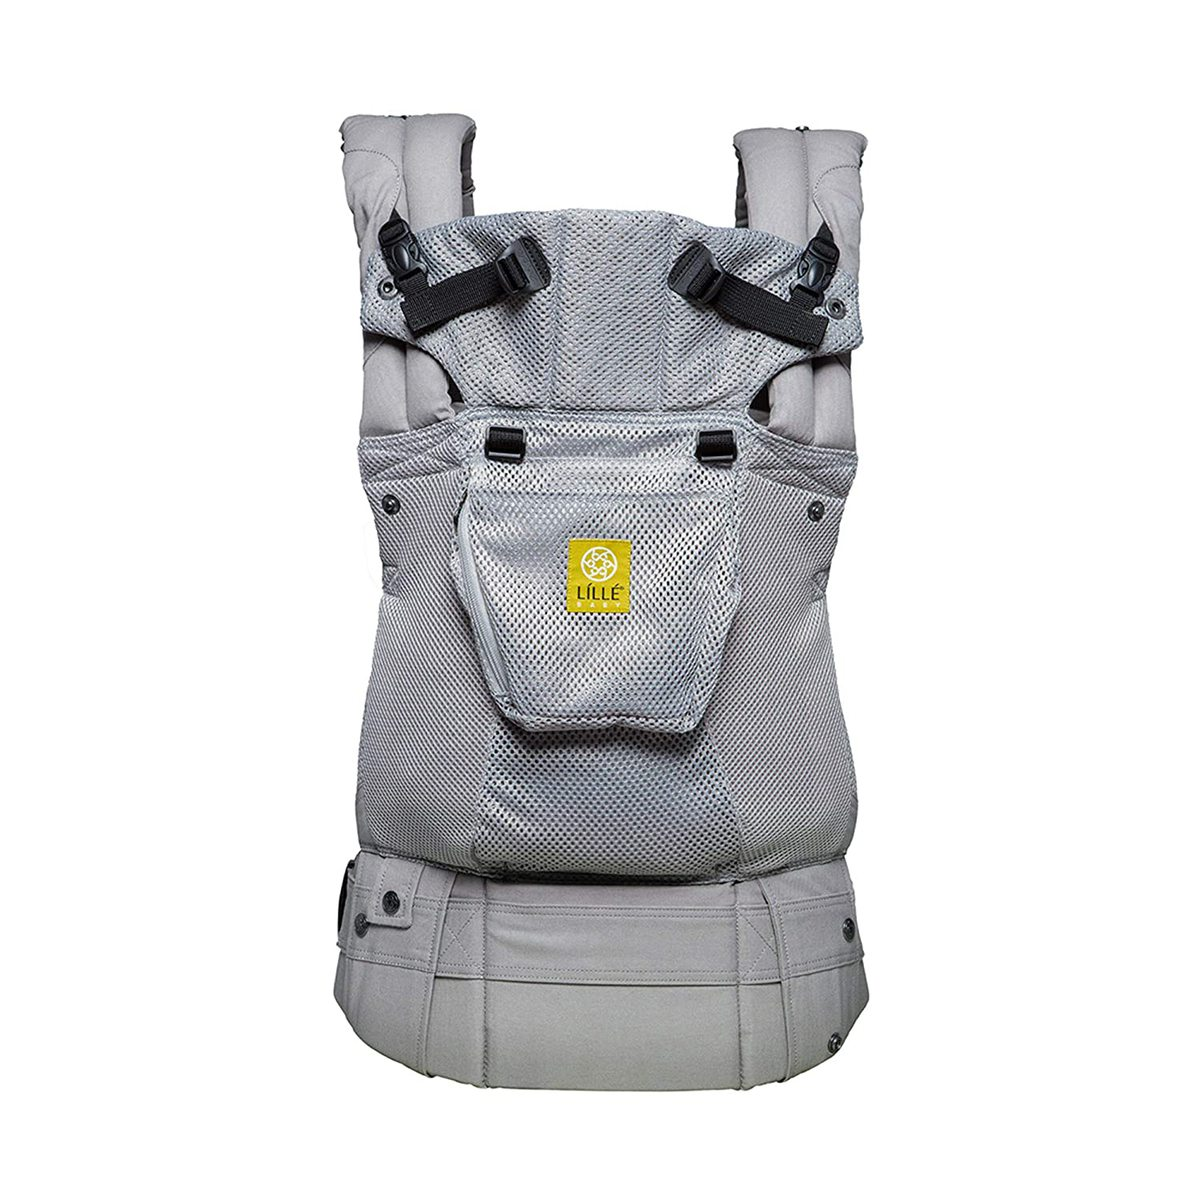 Baby Carrier Amazon